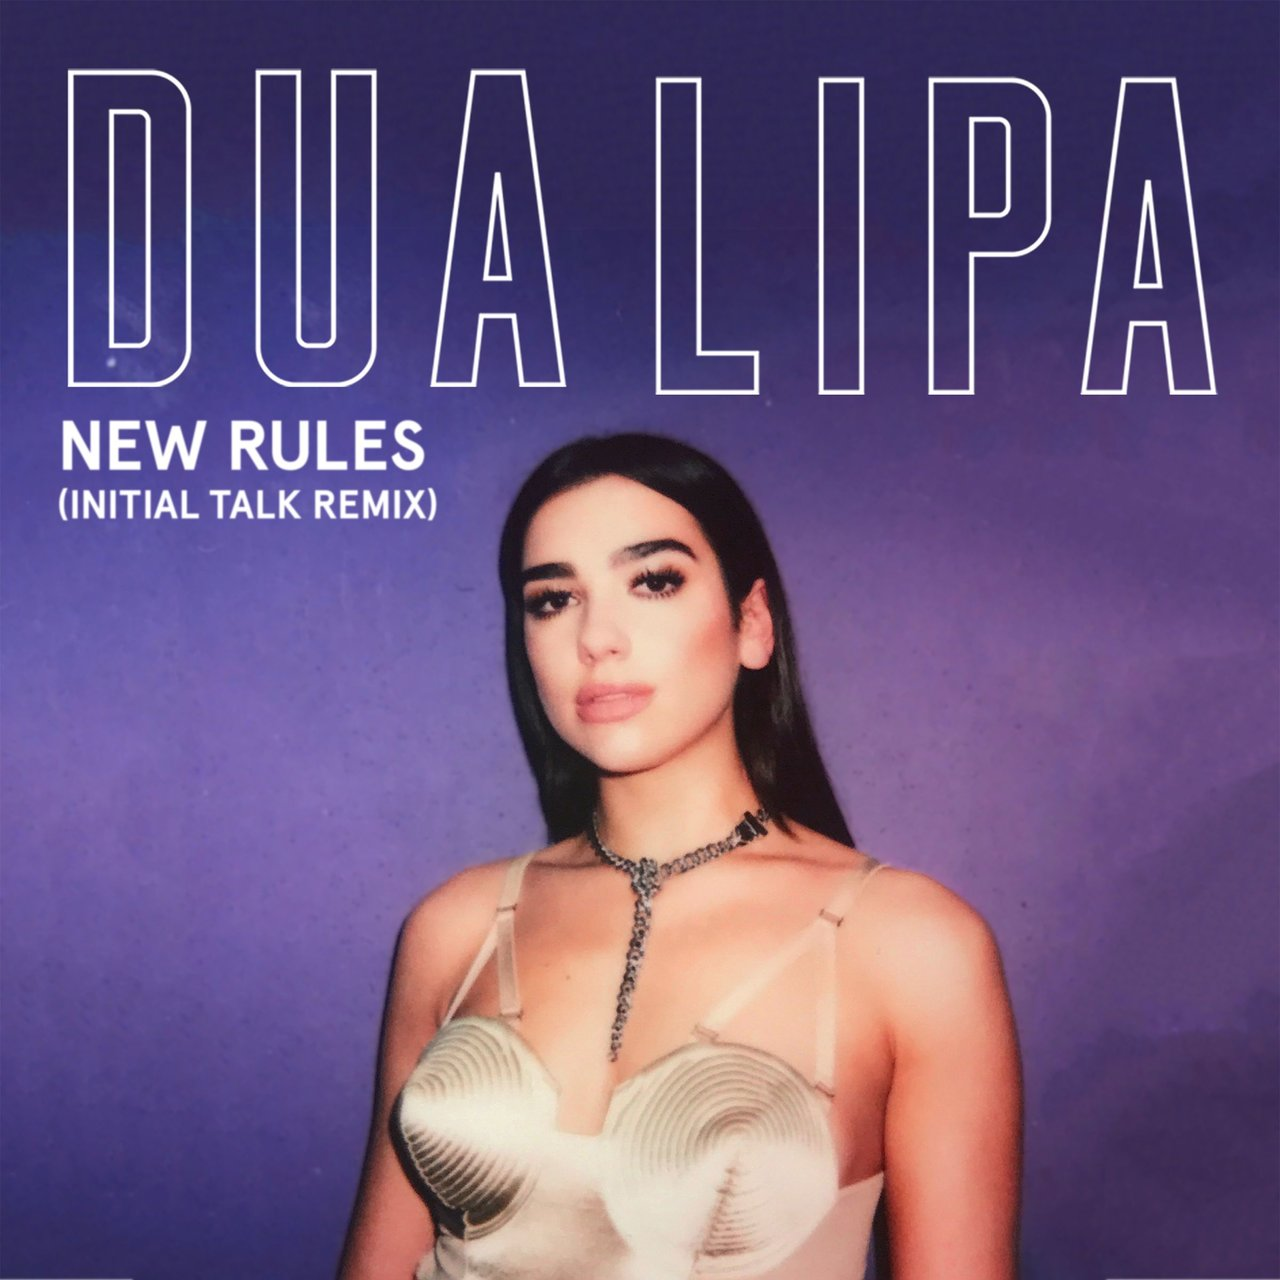 New Rules (Initial Talk Remix)